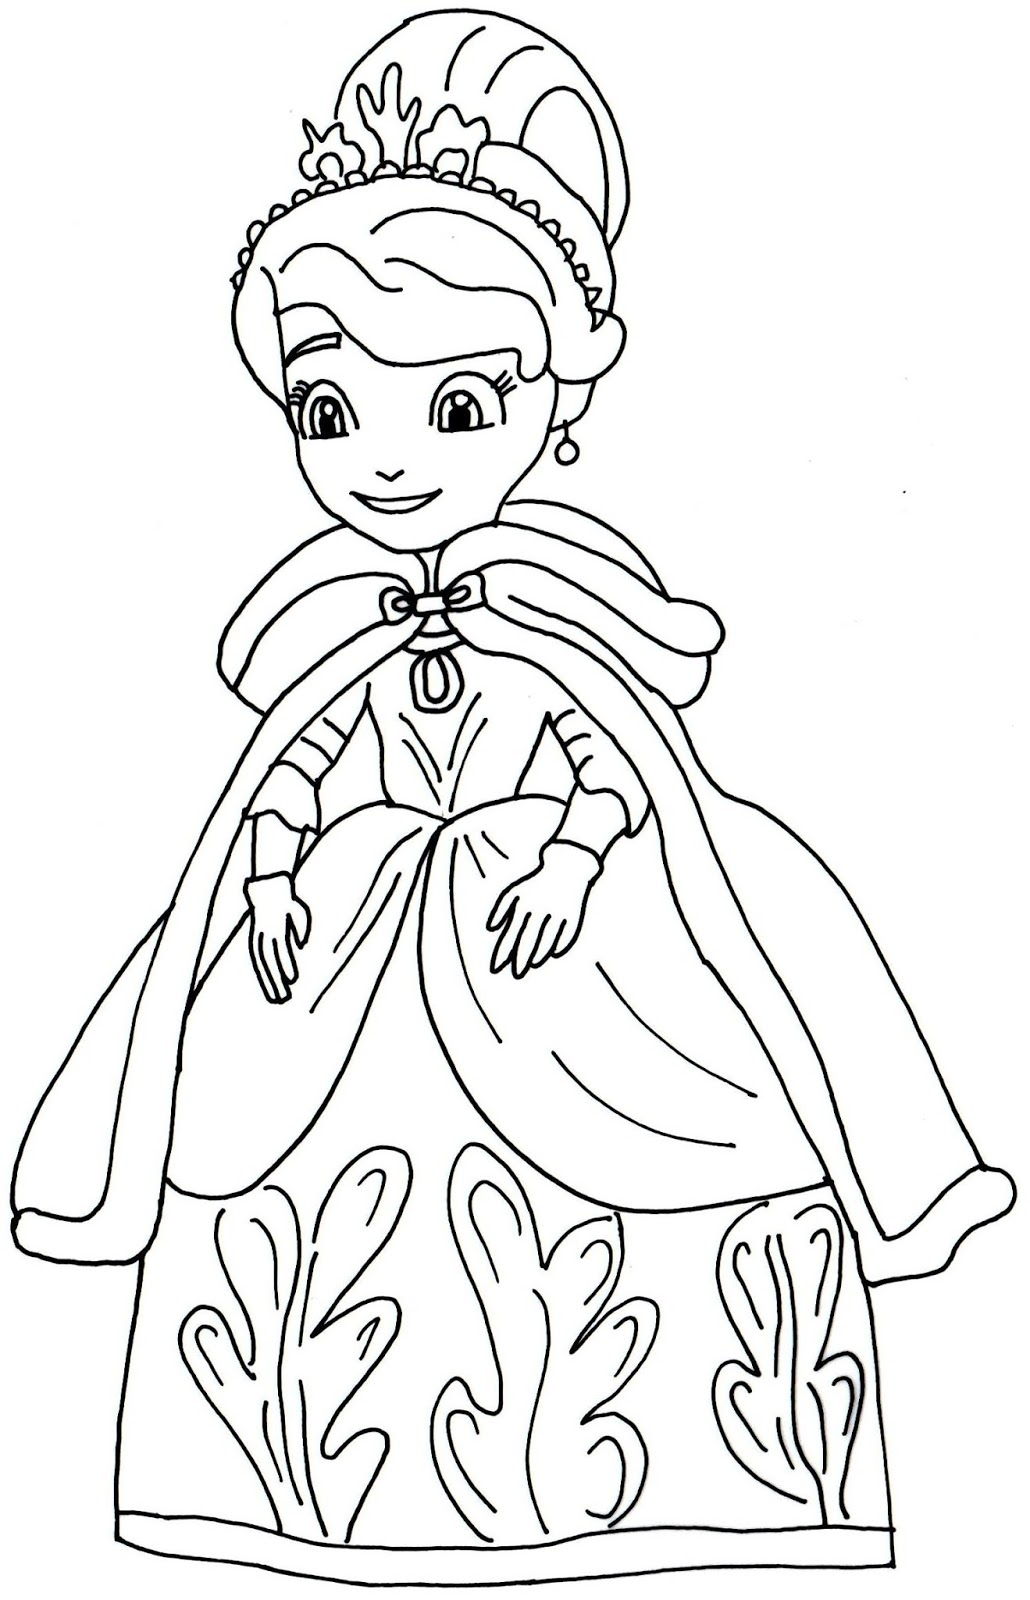 sofia the first amber coloring pages - sofia the first coloring pages winters gift sofia the